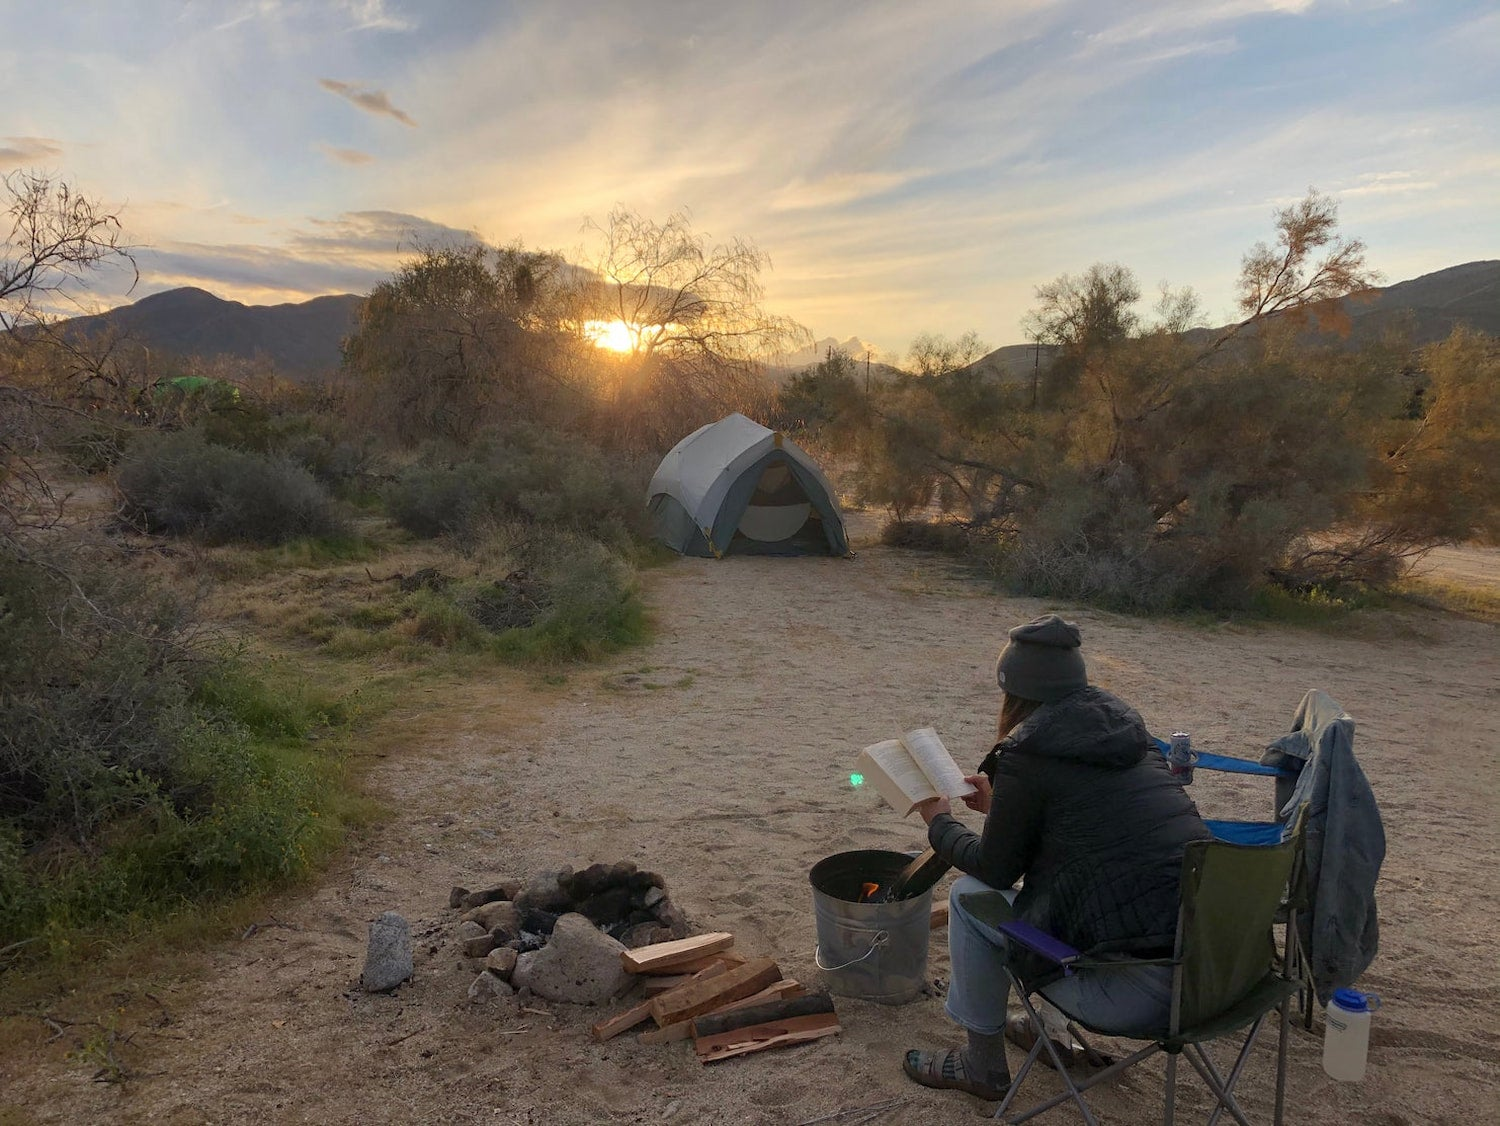 woman reading book by campfire with tent in the background